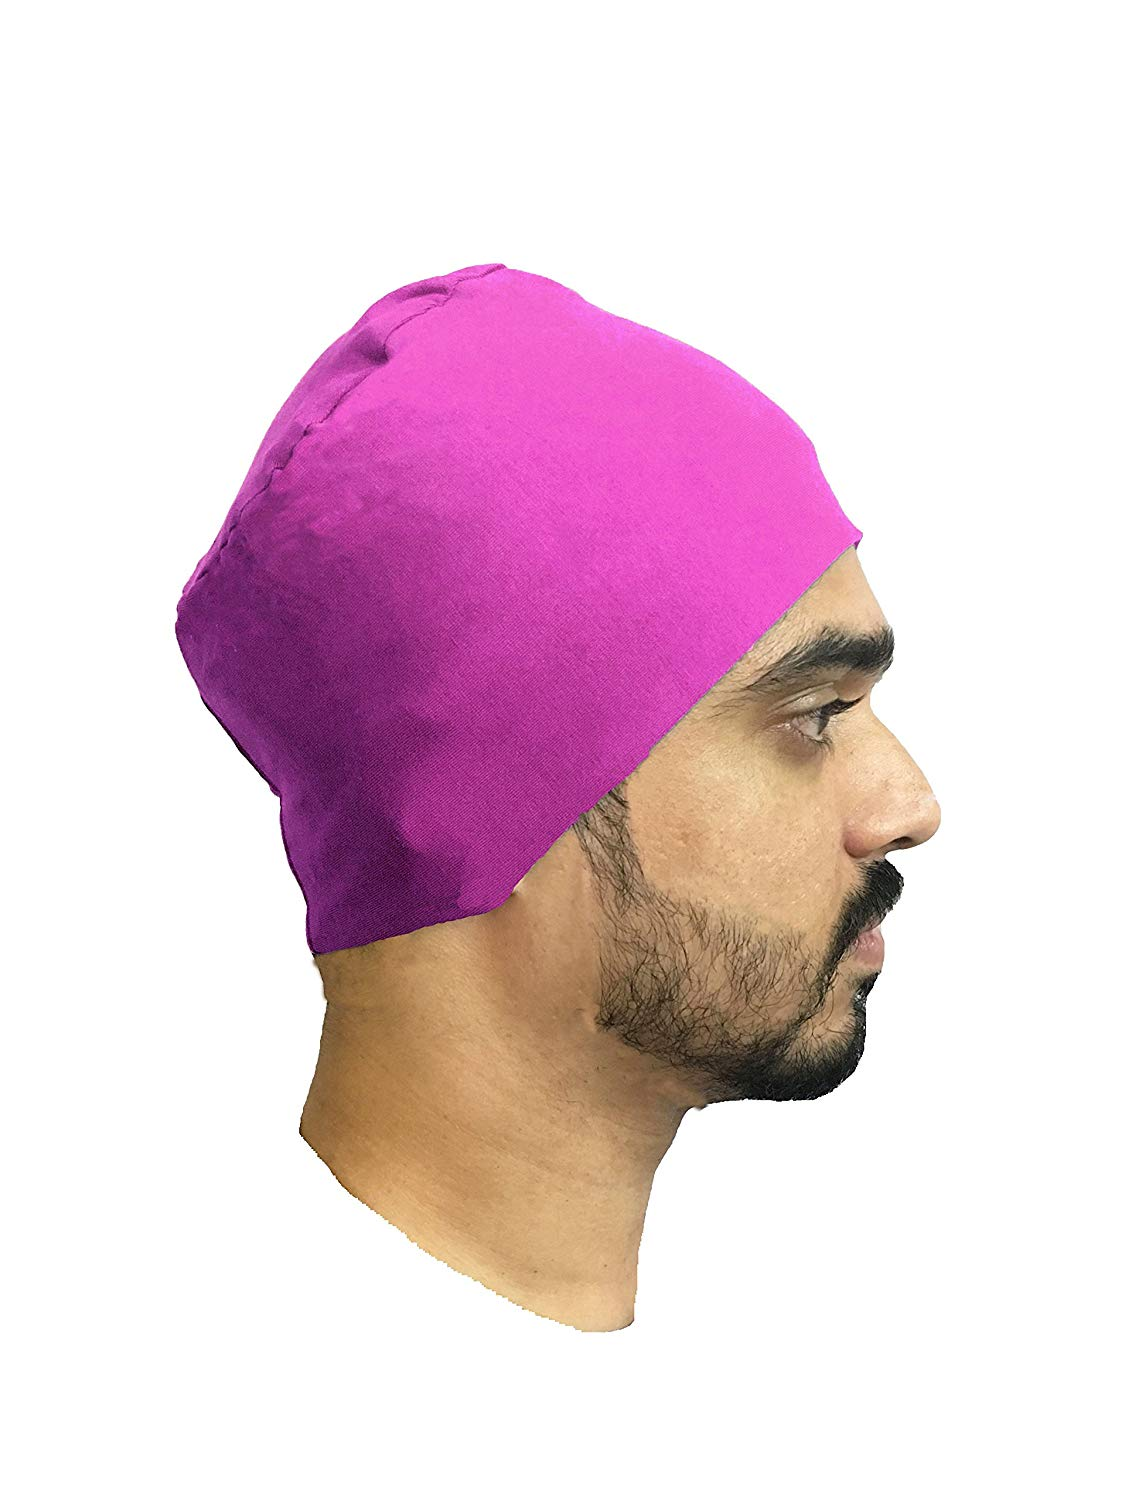 Pink Beanies Mens Beanies Stylish Beanies Cap for Men Bikers Beanies Under Helmet CAPS Chemo Cancer CAPS Summer Beanies Sleep Turban Ear Cover CAPS Cotton Beanies Chemo Therapy Headwrap